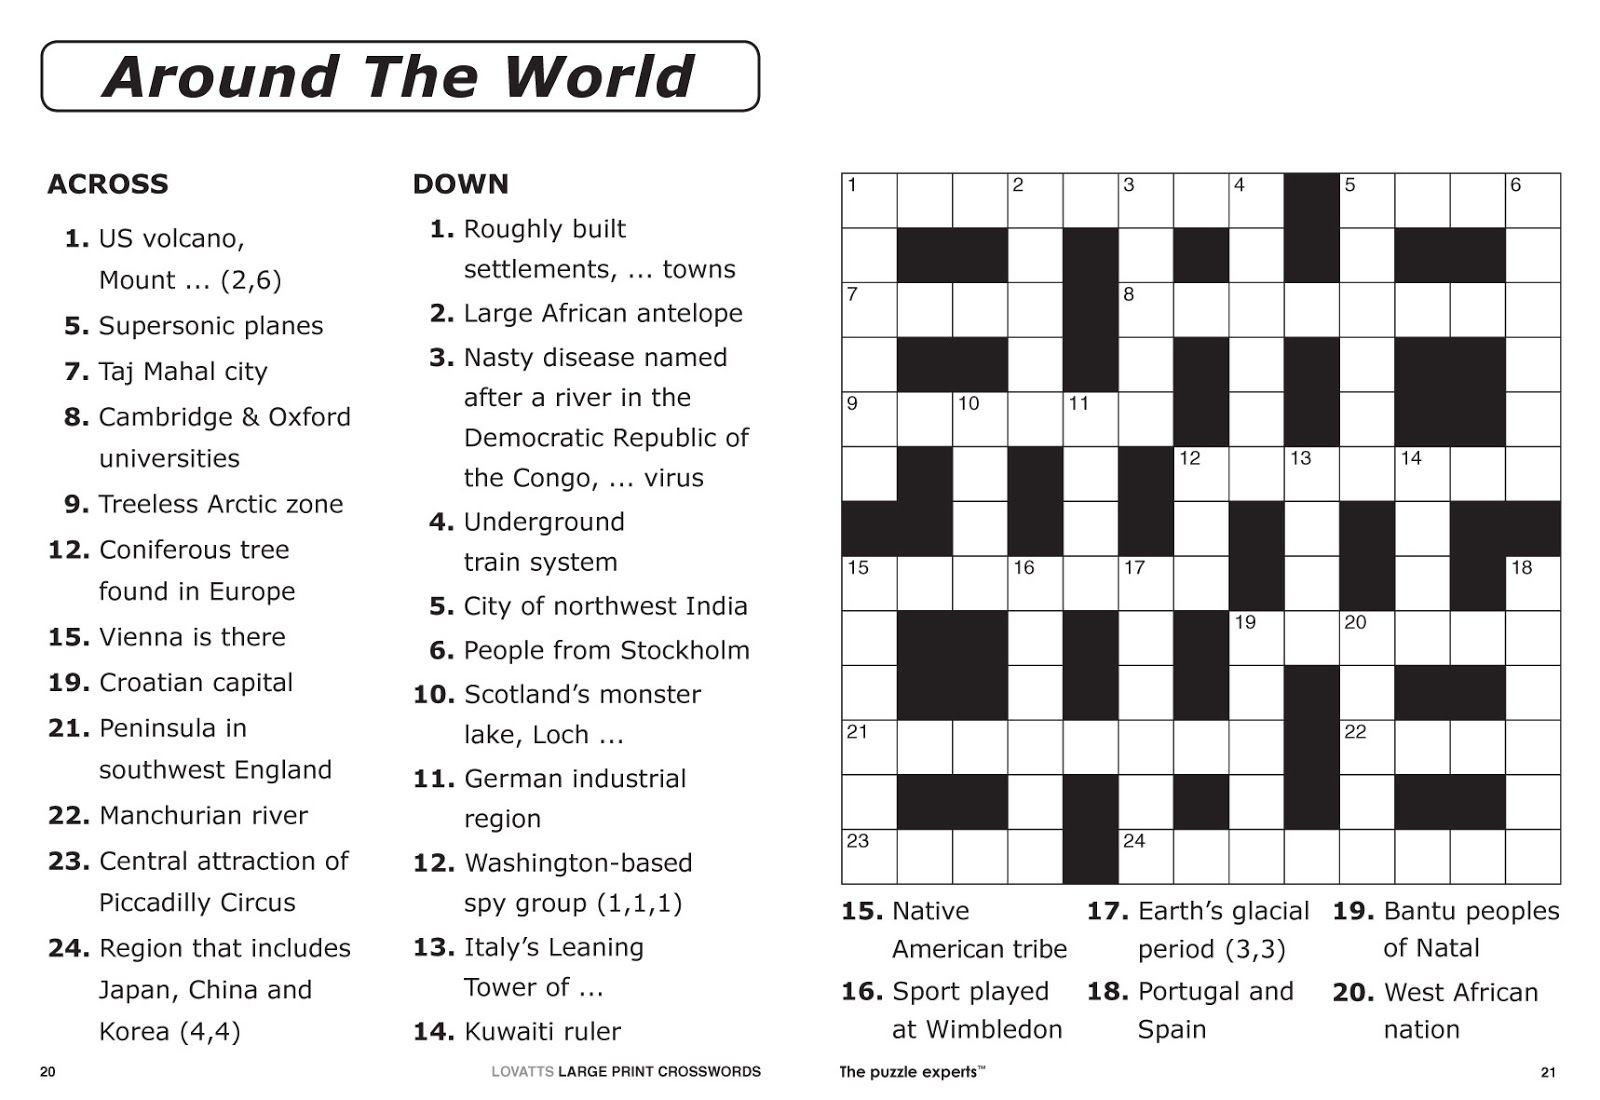 Free Printable Large Print Crossword Puzzles | M3U8 - Printable Crossword Puzzles For 10 Year Olds